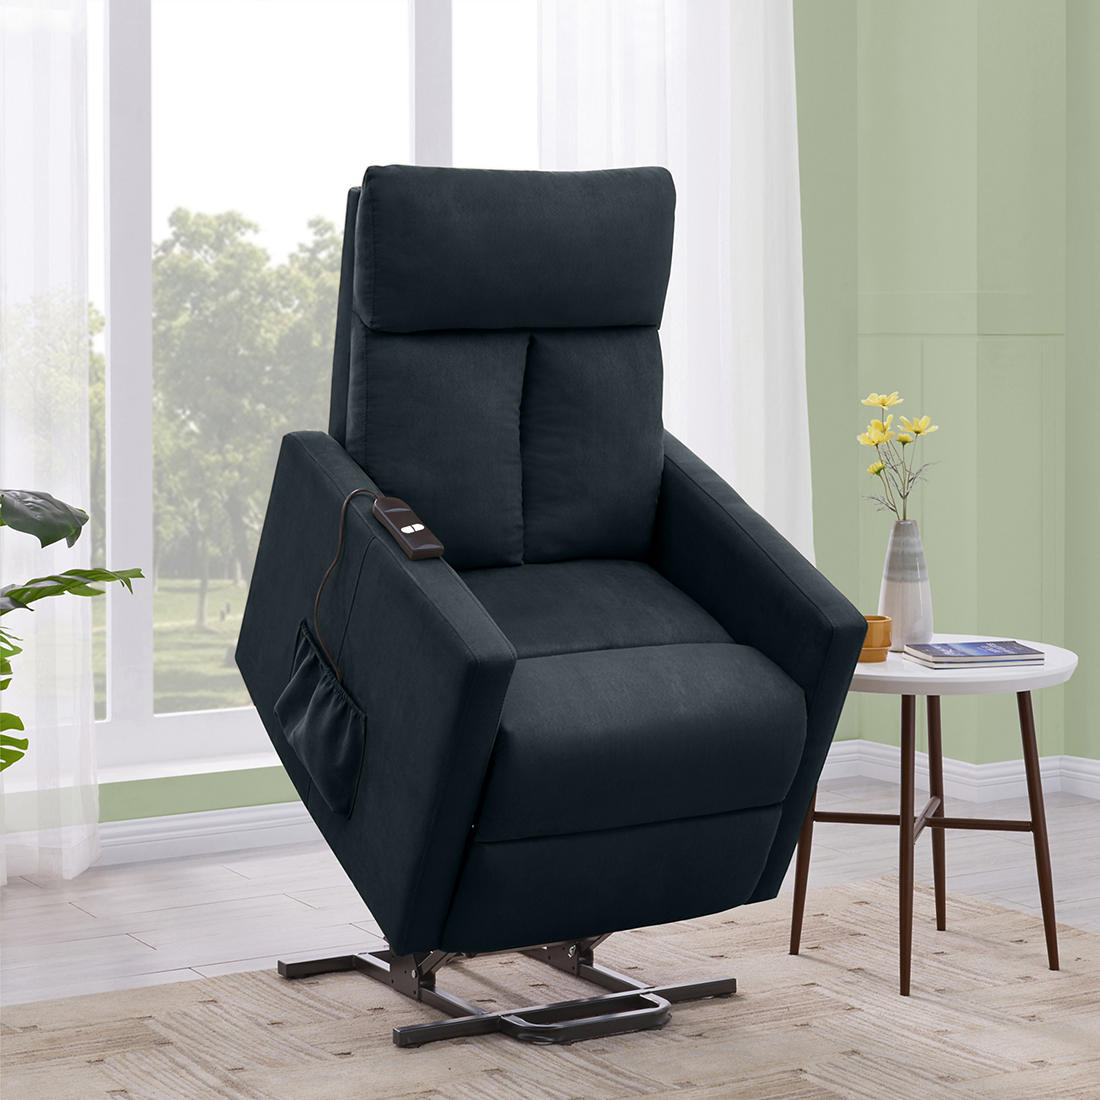 Magnificent Prolounger Power Lift Recliner Blue Ibusinesslaw Wood Chair Design Ideas Ibusinesslaworg